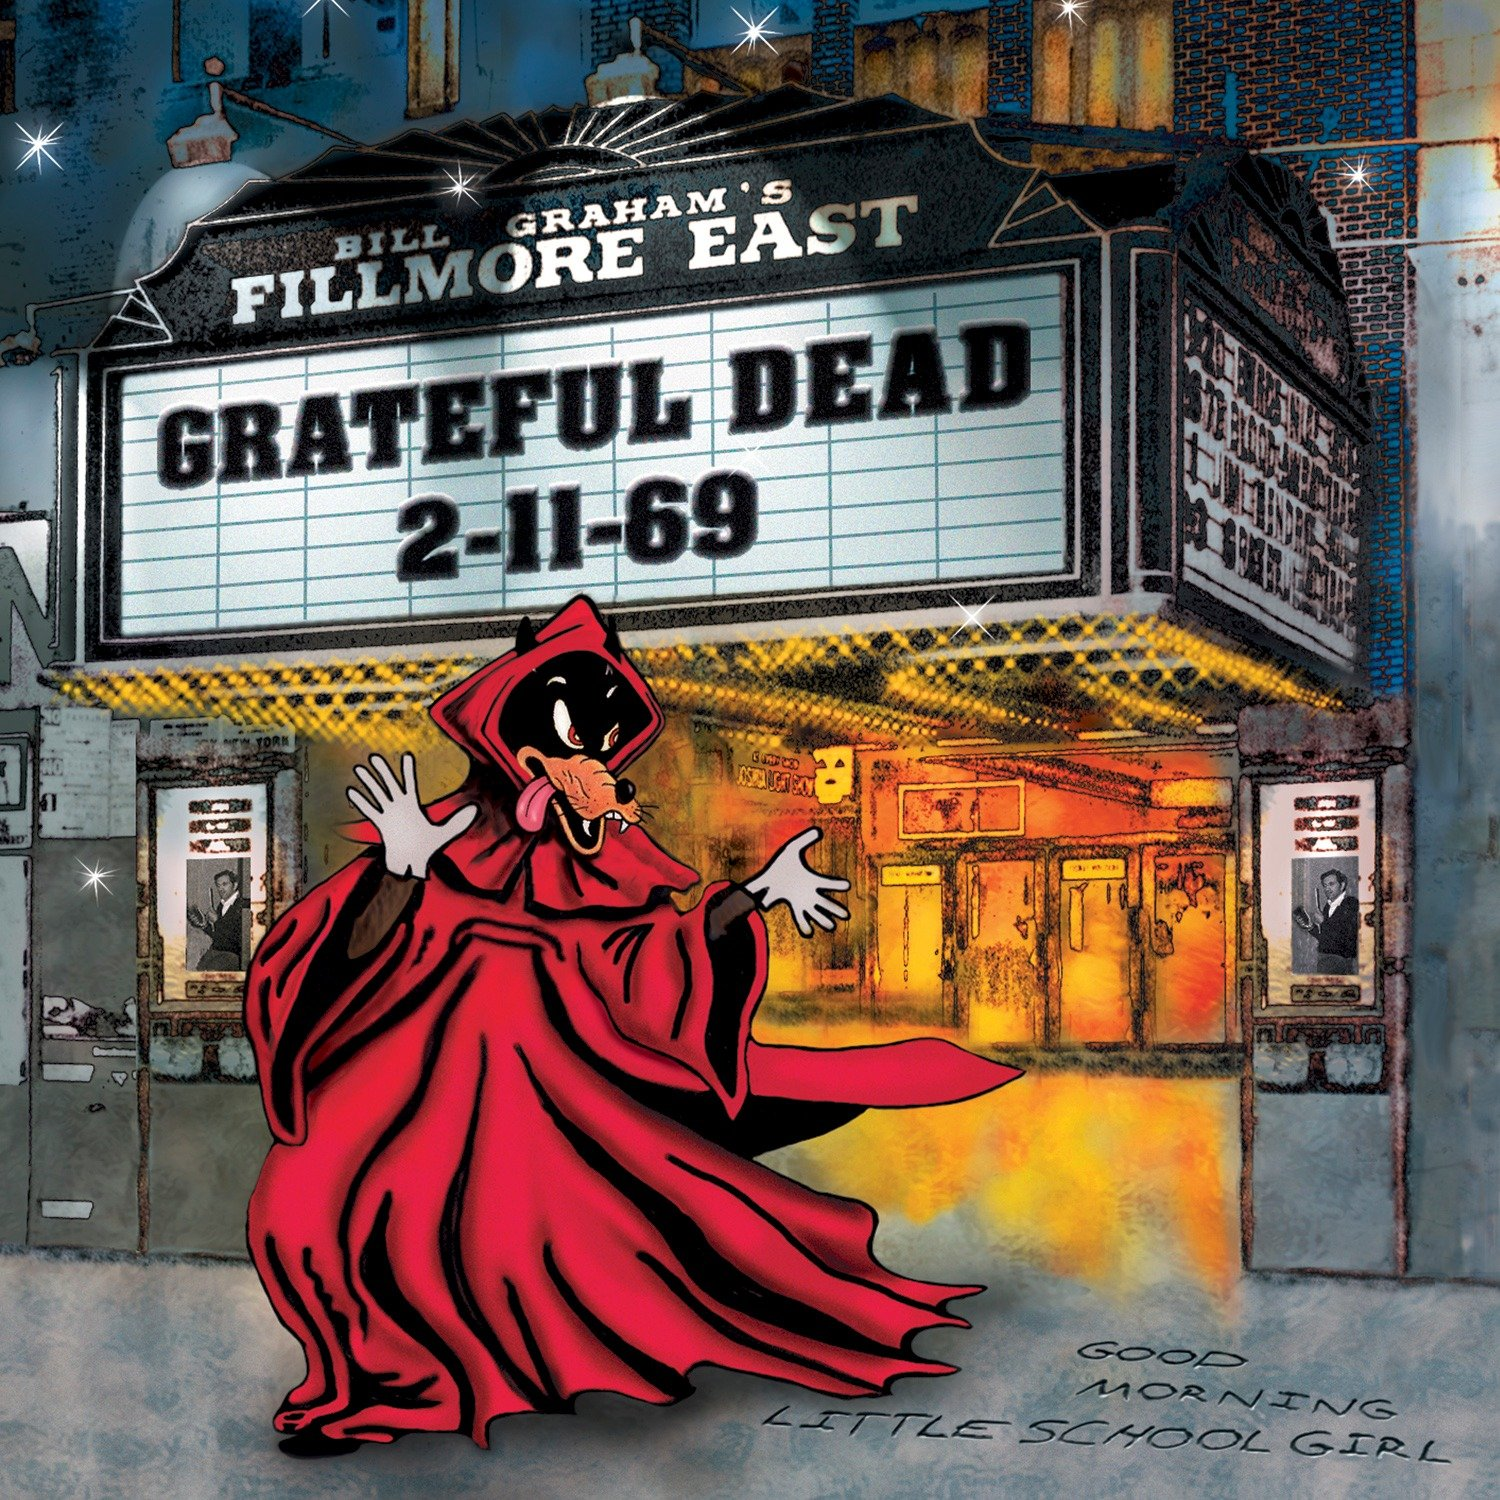 Fillmore East 2/11/69 [12 inch Analog]                                                                                                                                                                                                                                                                                                                                                                                                <span class=